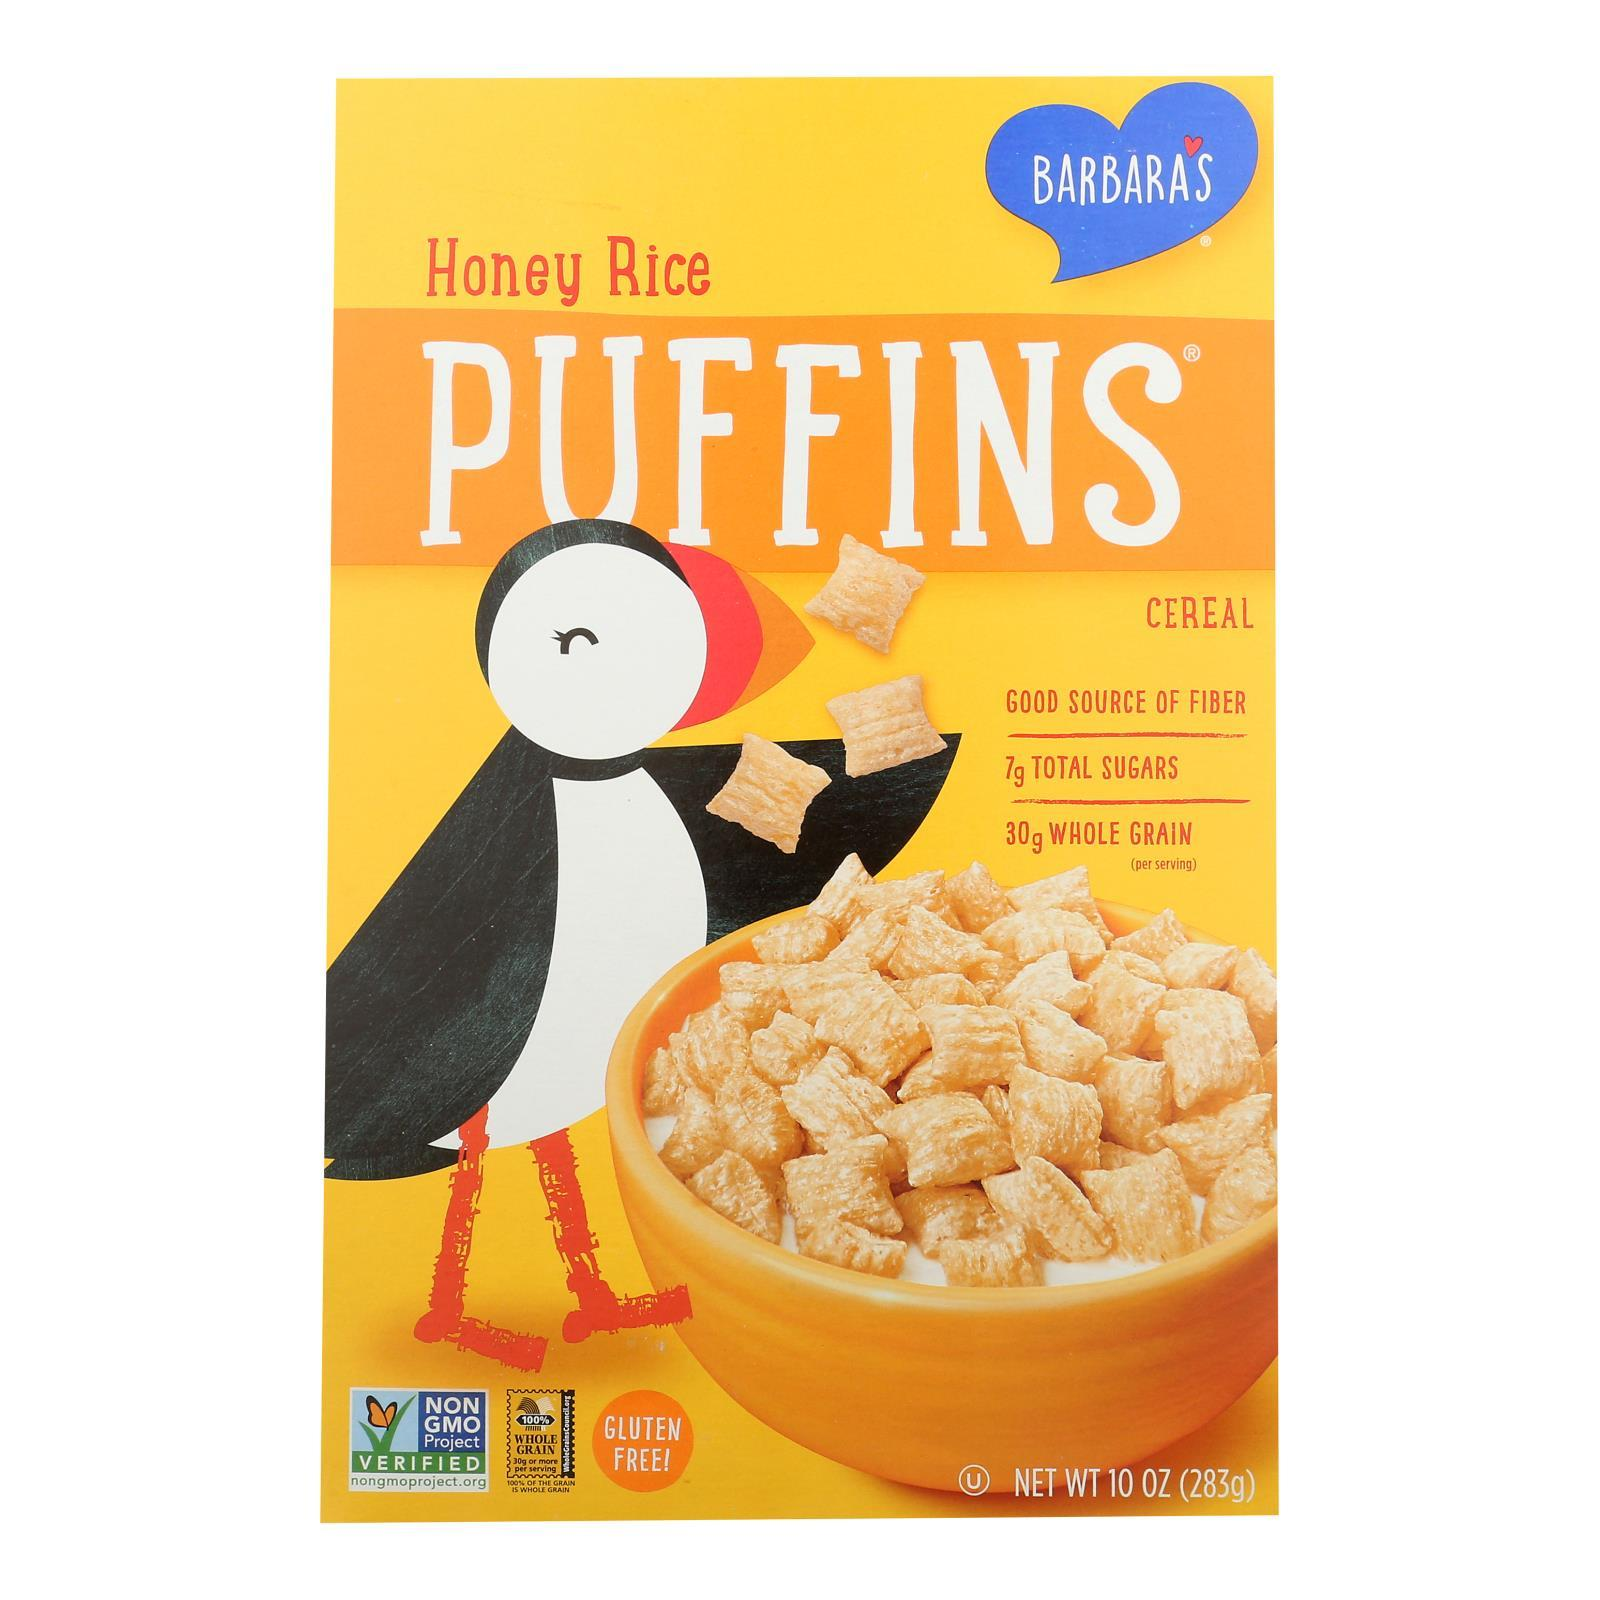 Barbara's Bakery - Puffins Cereal - Honey Rice - Case Of 12 - 10 Oz. - BeeGreen